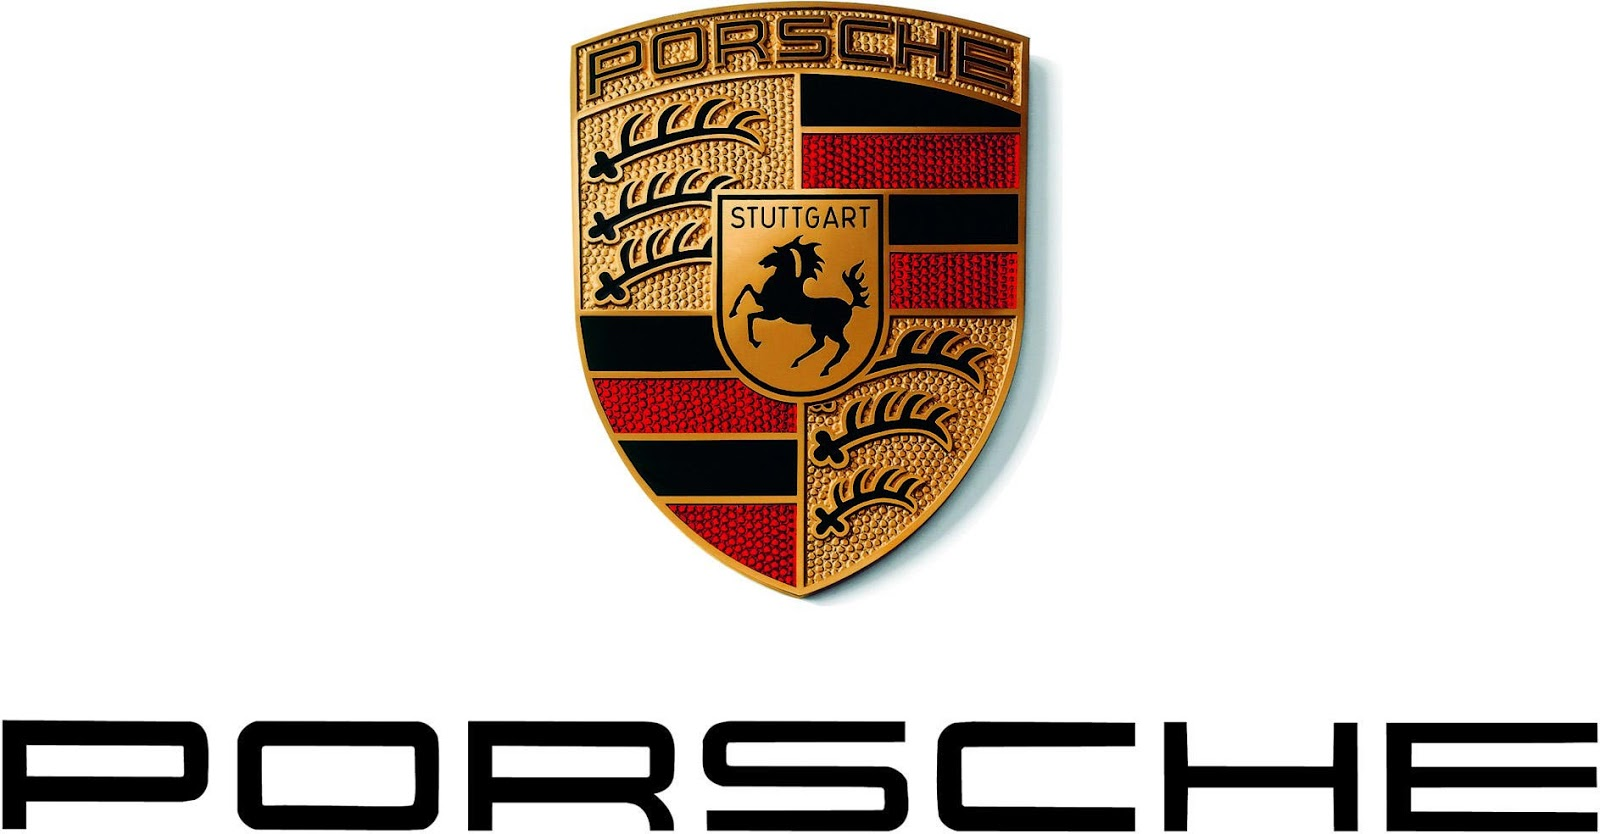 Porsche is working on 1.6-, 2.0- and 2.5-litre four-cylinder boxer engines